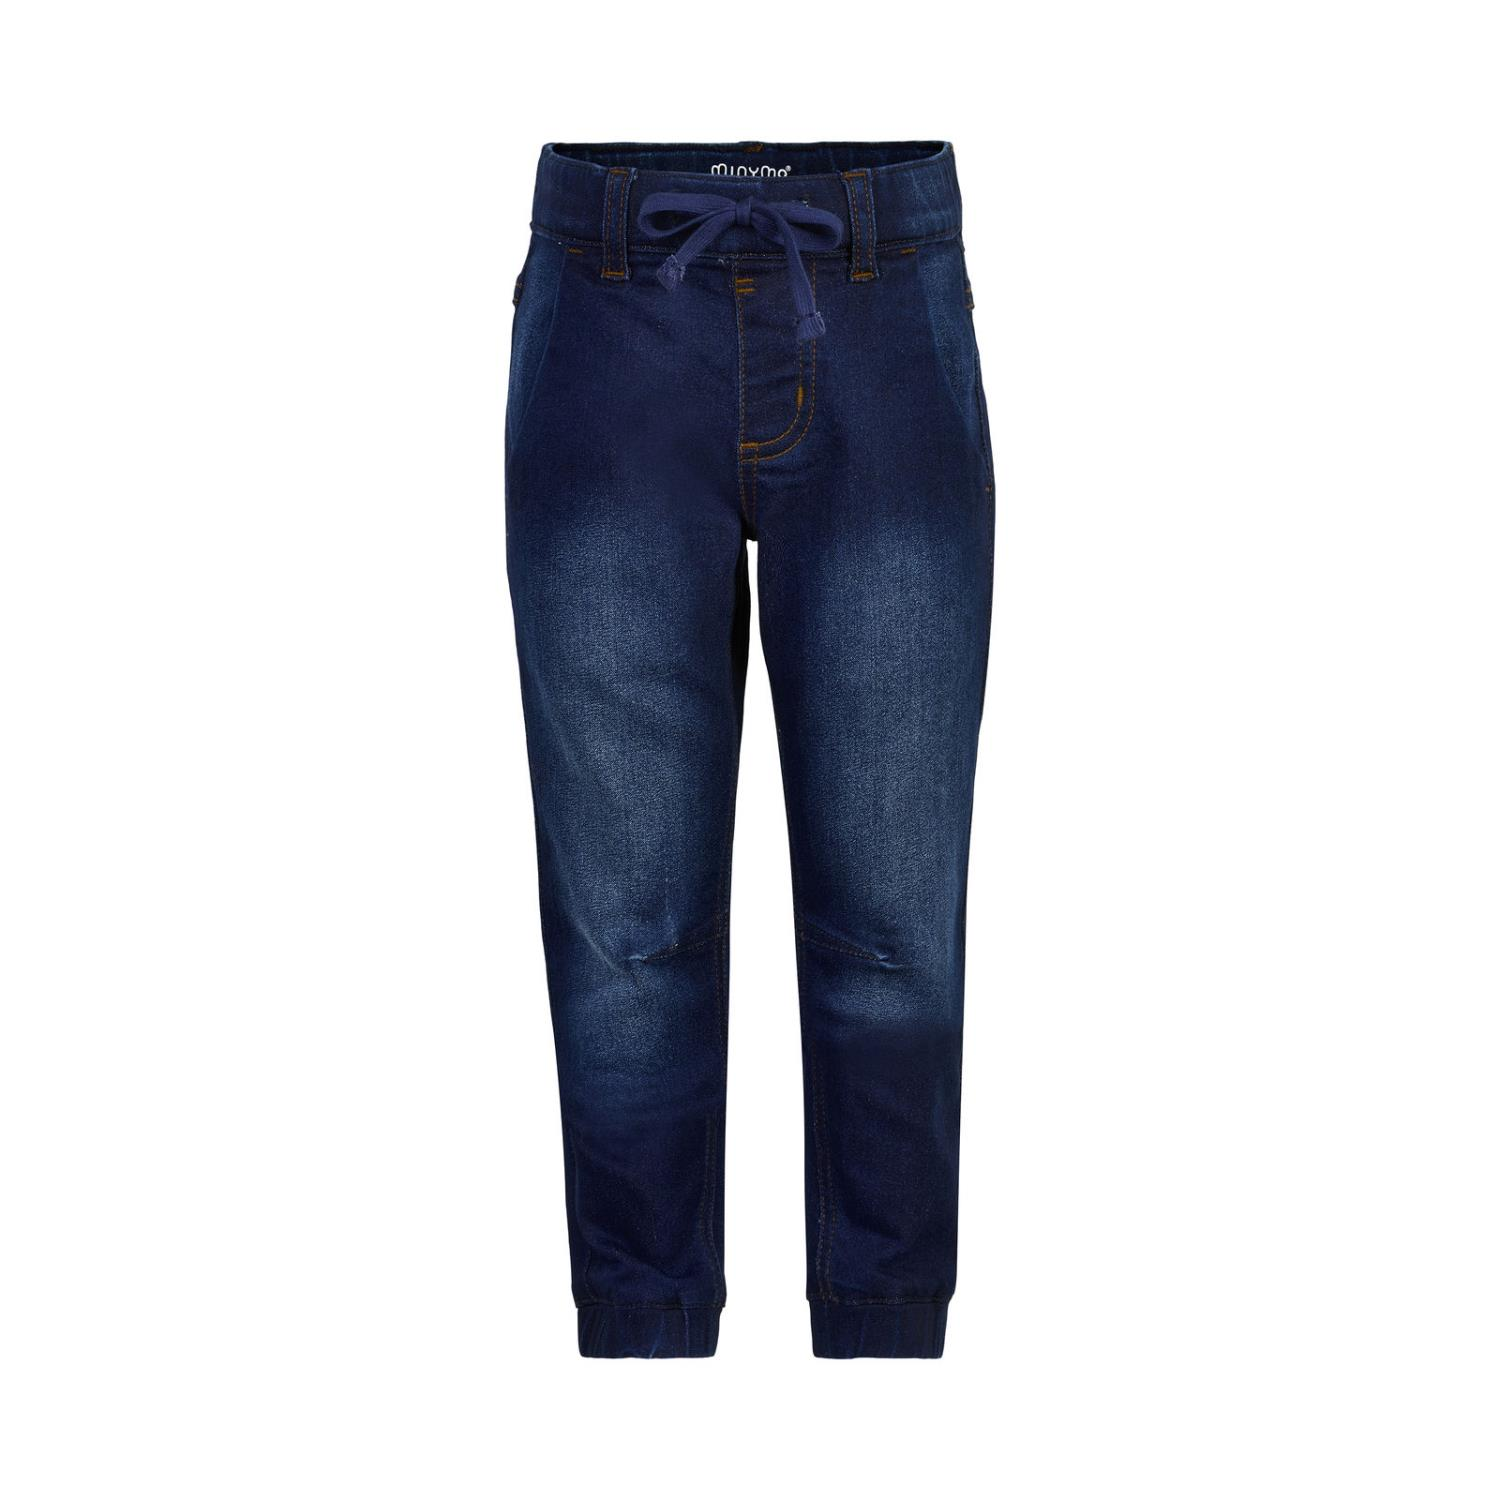 MinyMo Jeans power stretch loose fit